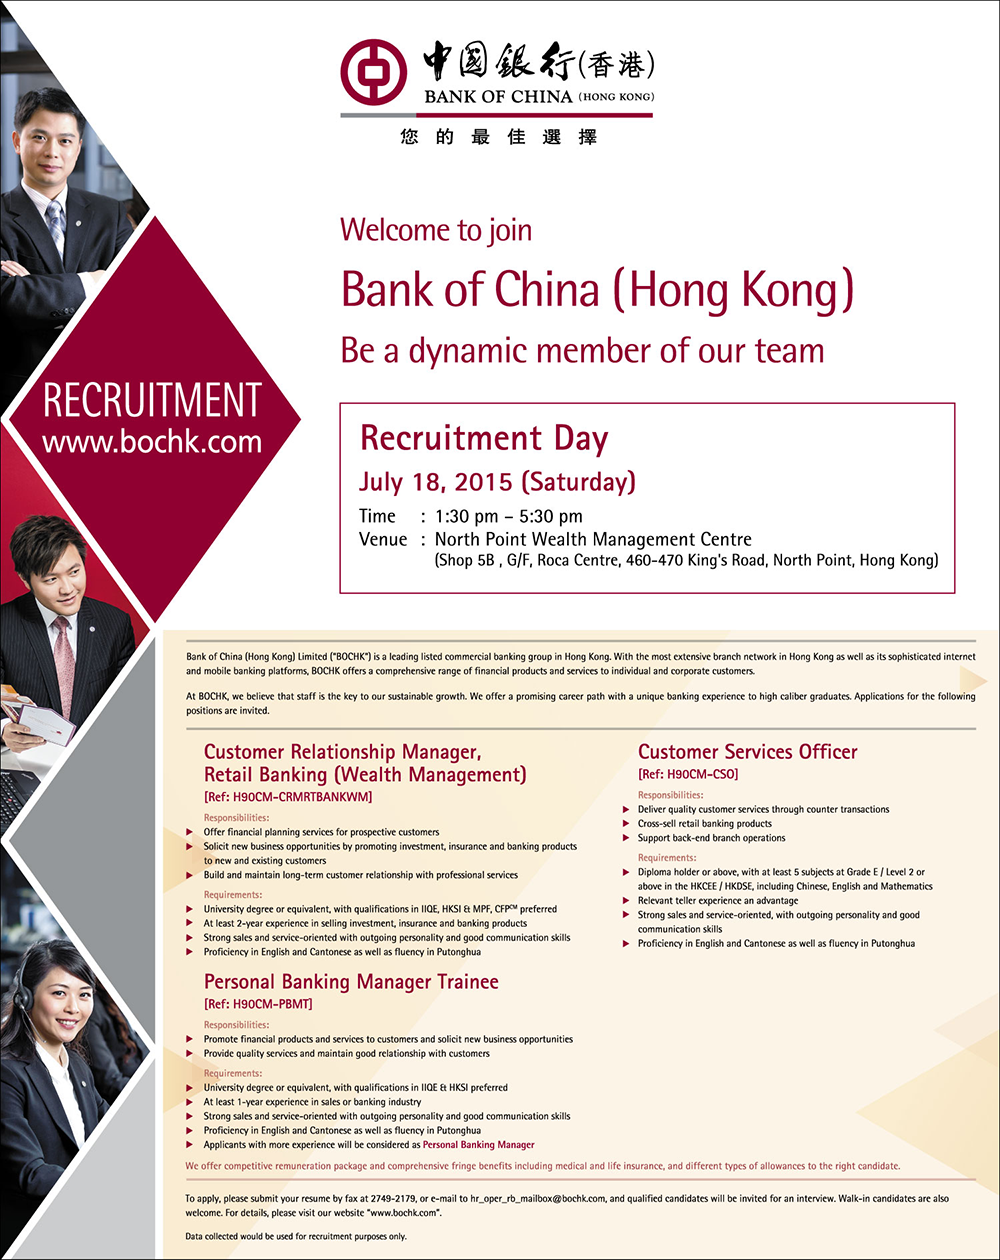 Recruitment Day on July 18, 2015 offered by Bank of China (Hong Kong)